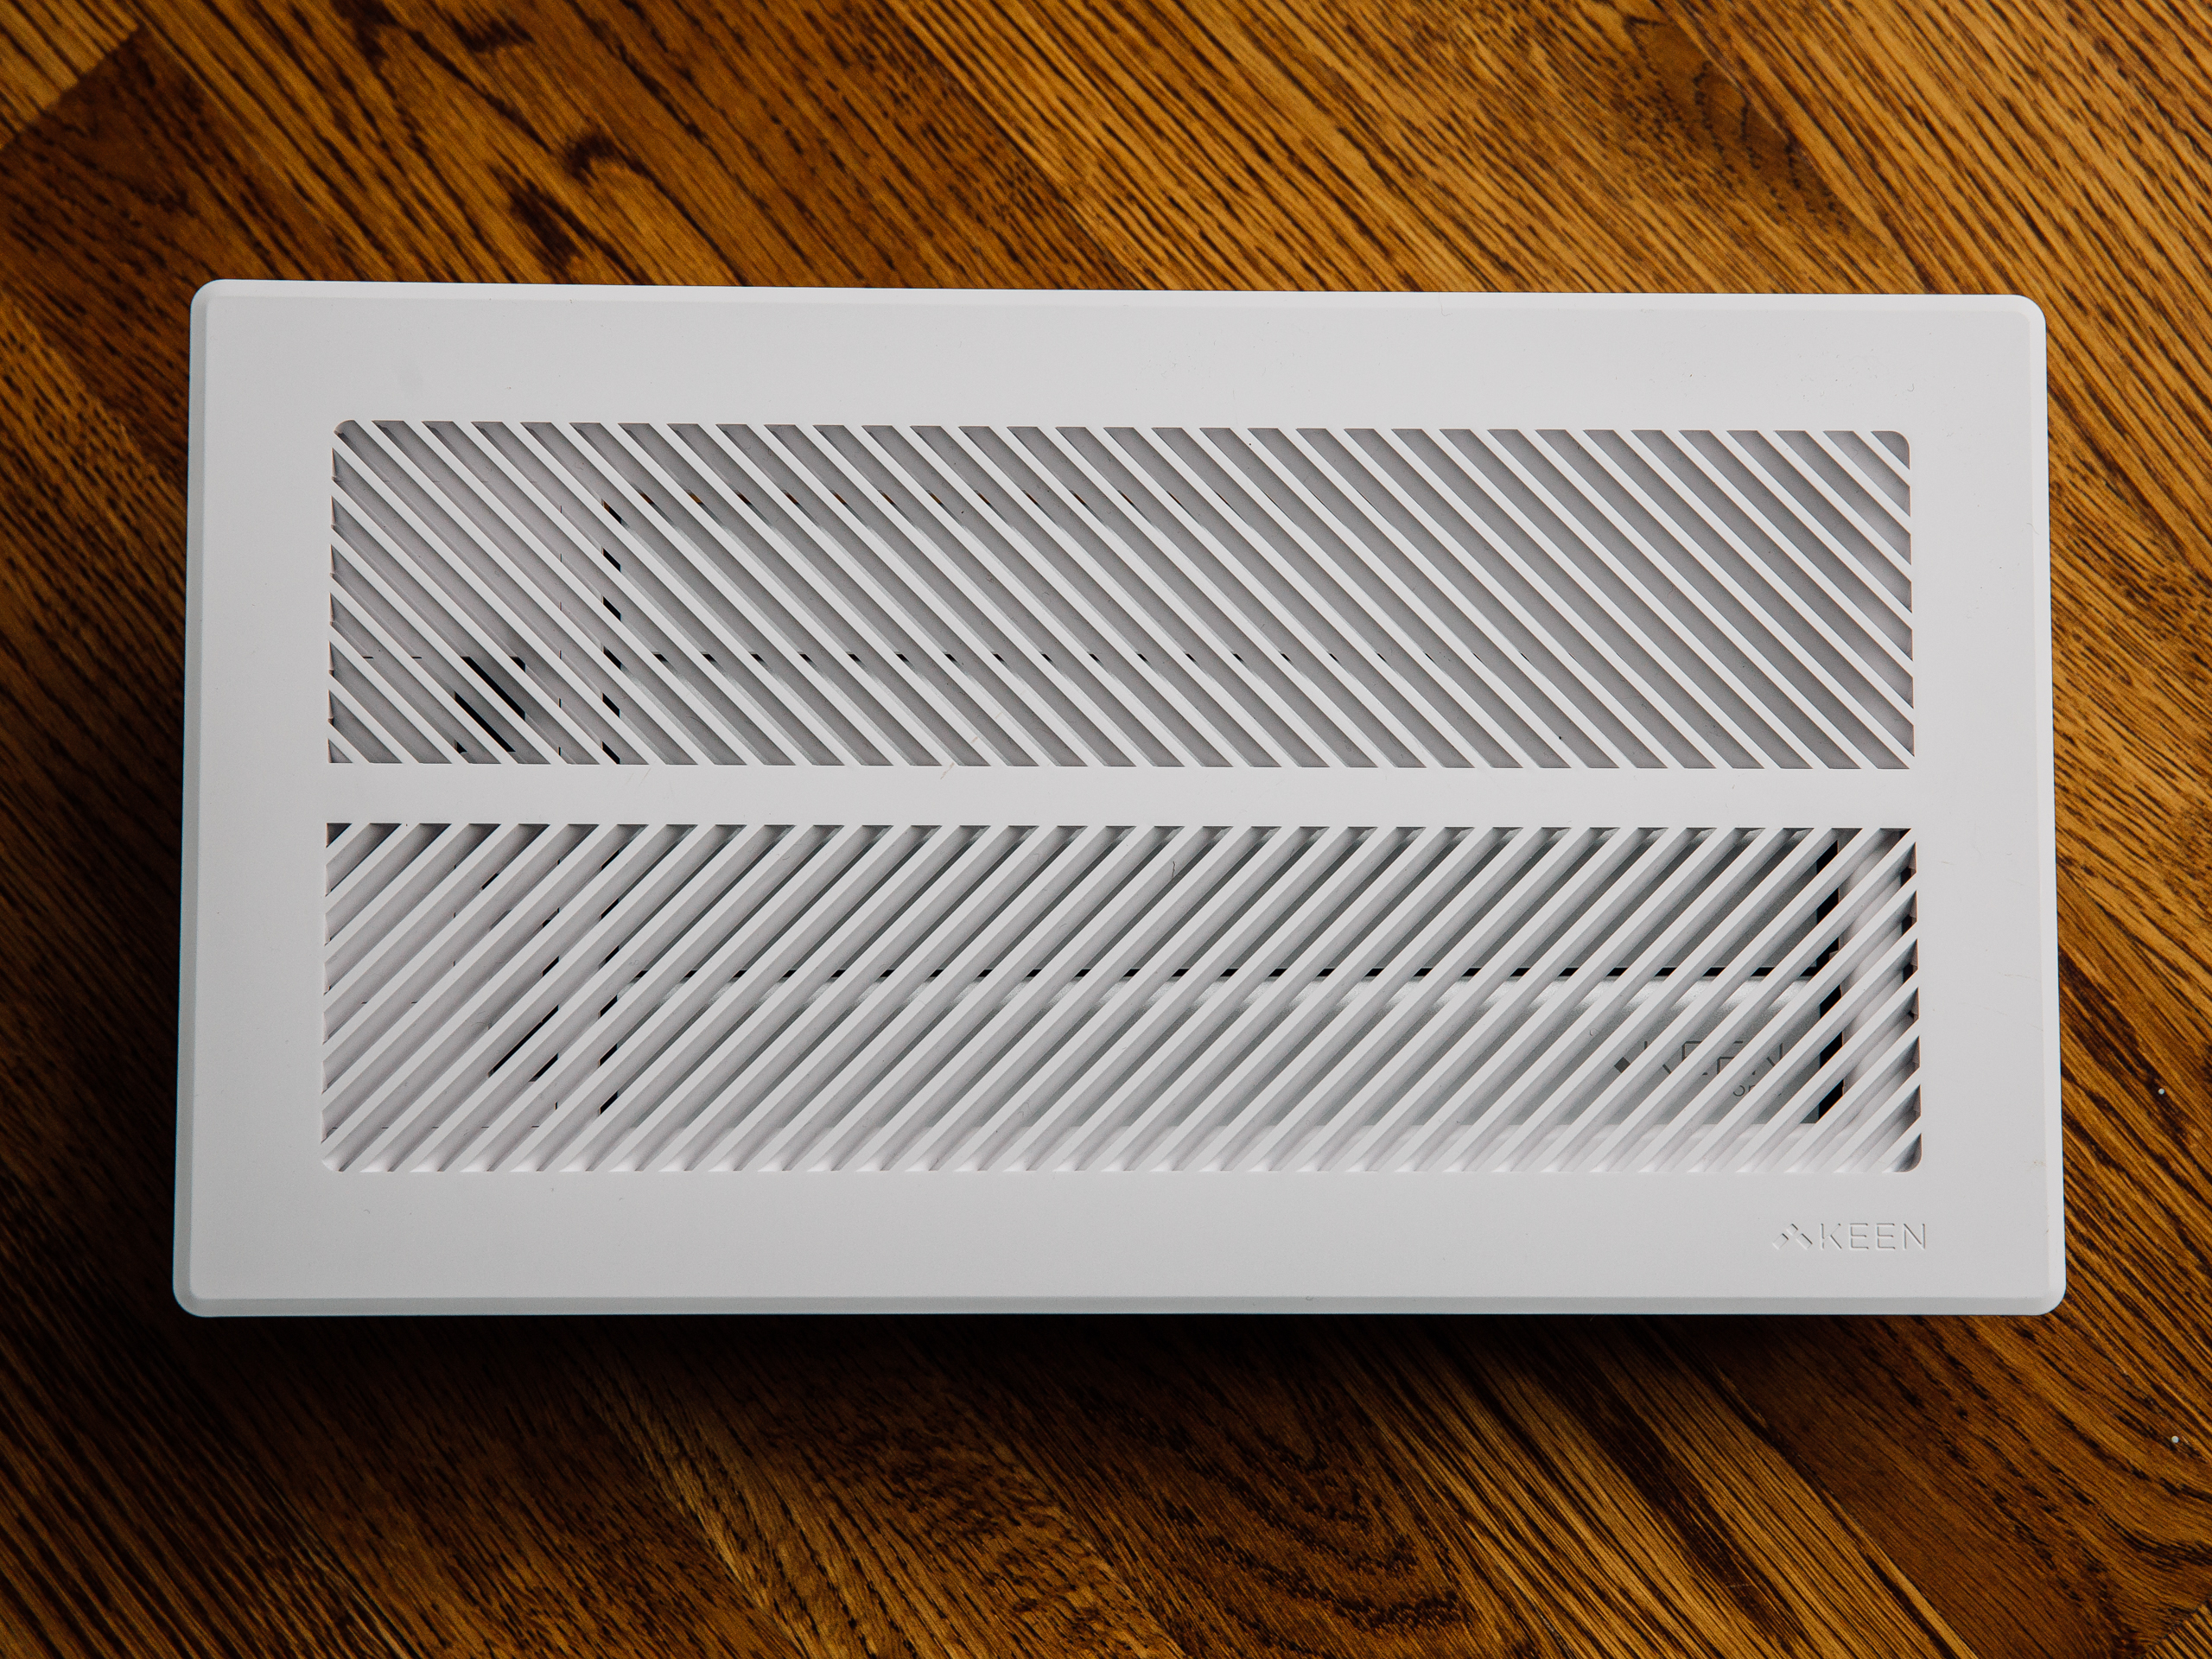 #713C0B These Smart Vents Leave Us Cold (pictures) CNET Highly Rated 6549 Smart Vent Products wallpapers with 1170x877 px on helpvideos.info - Air Conditioners, Air Coolers and more